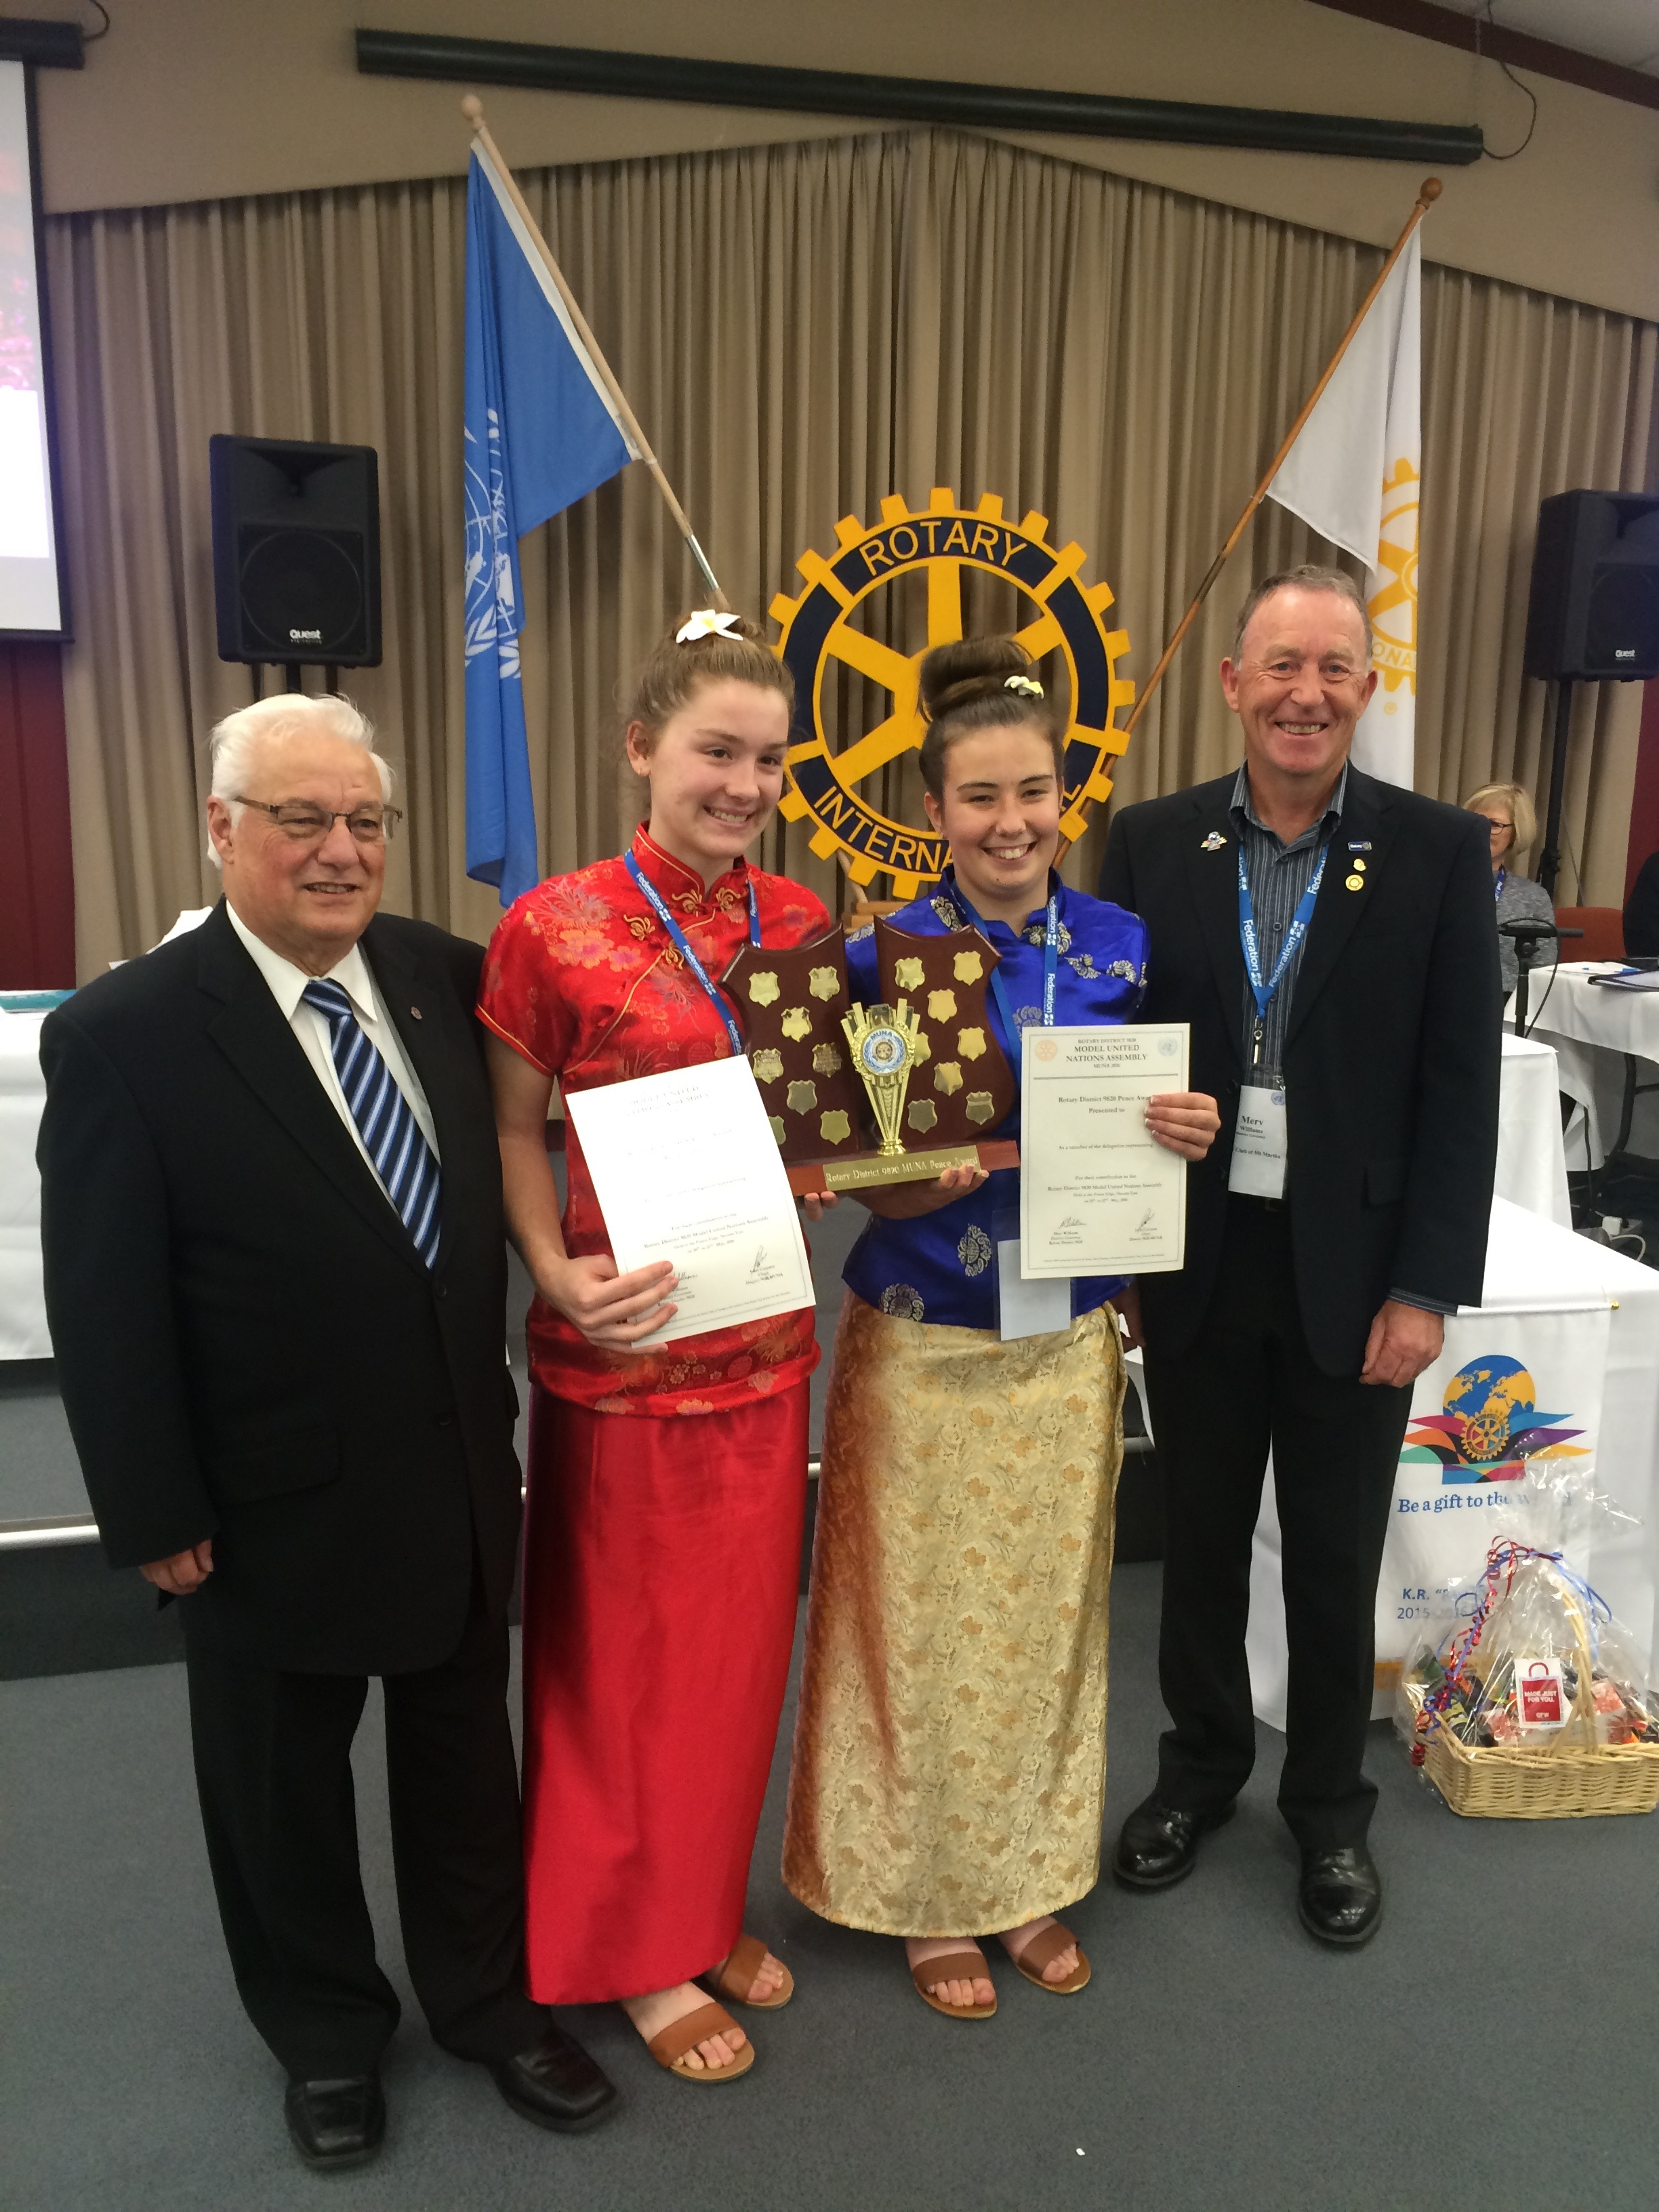 Rotary District 9820 Peace Award